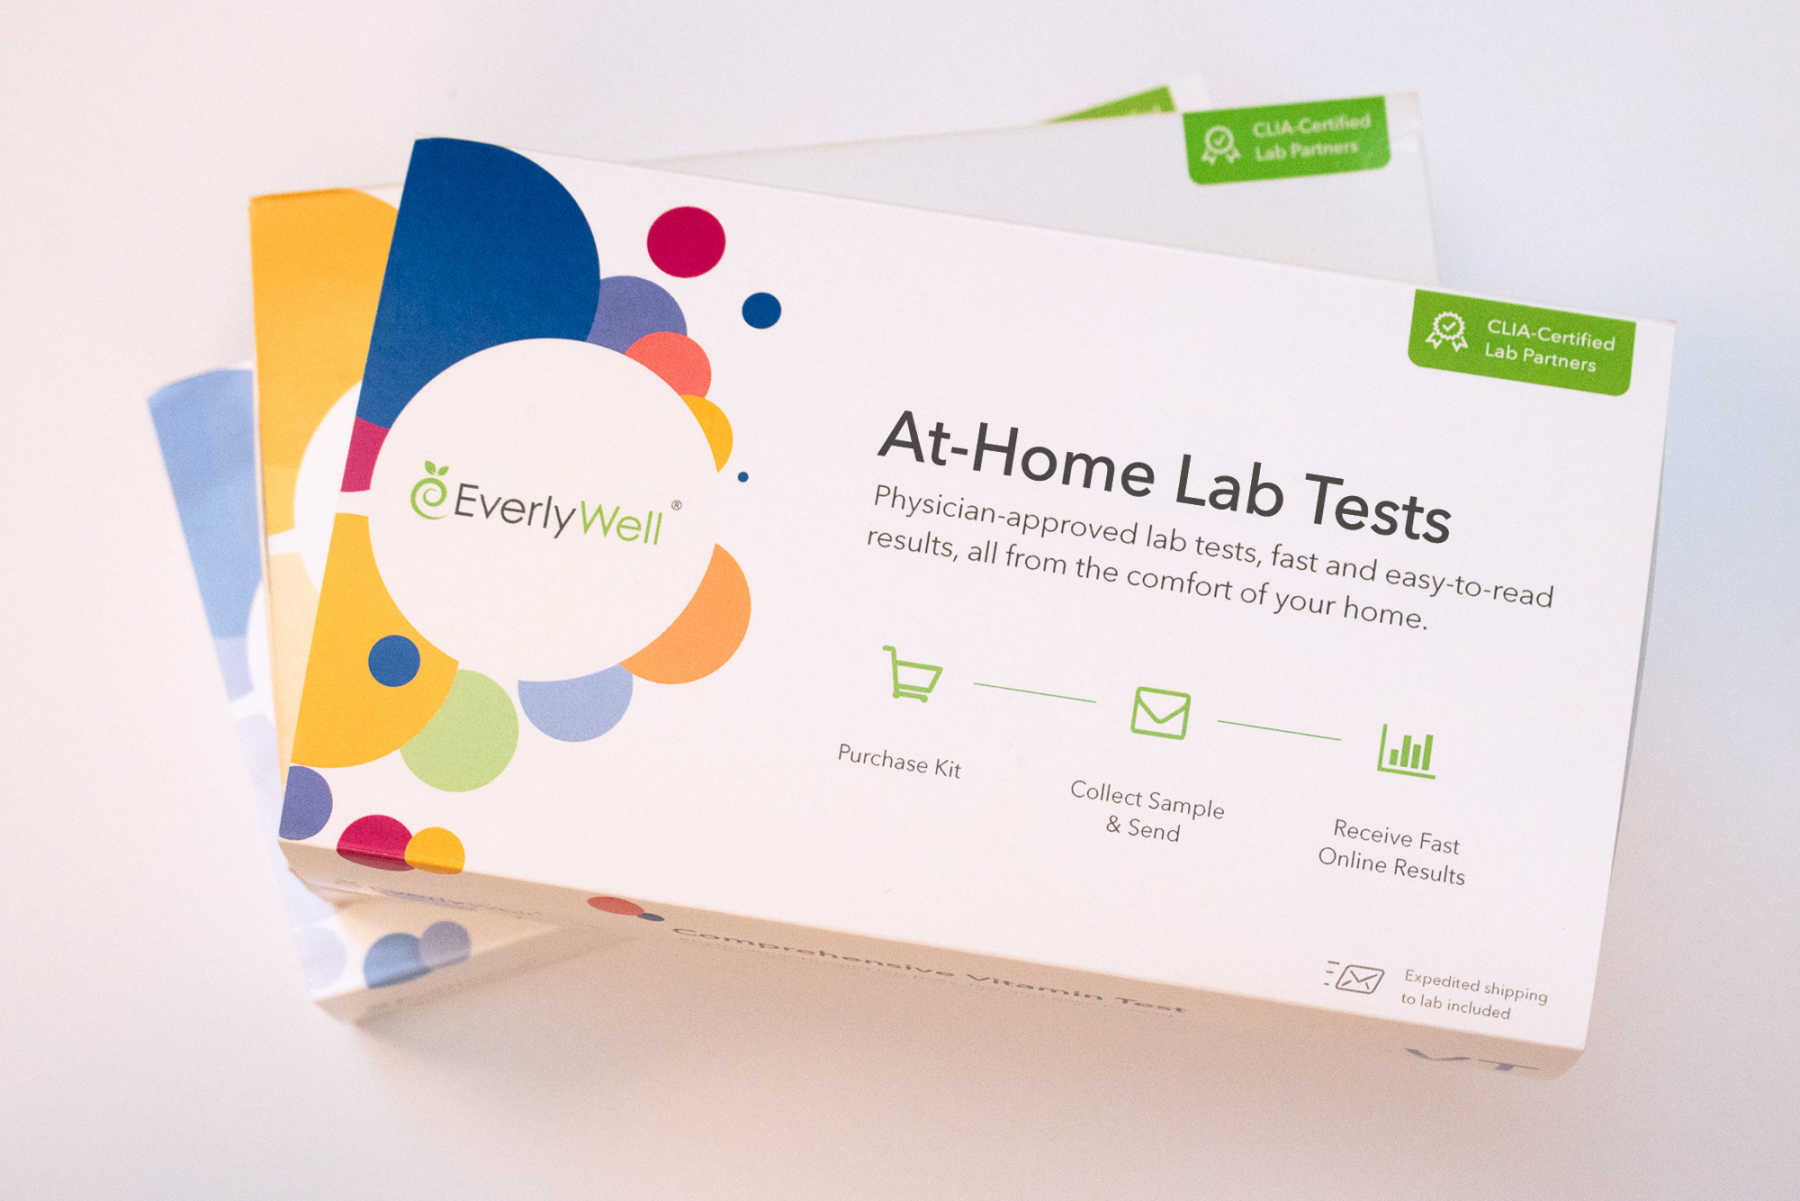 EverlyWell At-Home Lab Tests: How It Works - EverlyWell